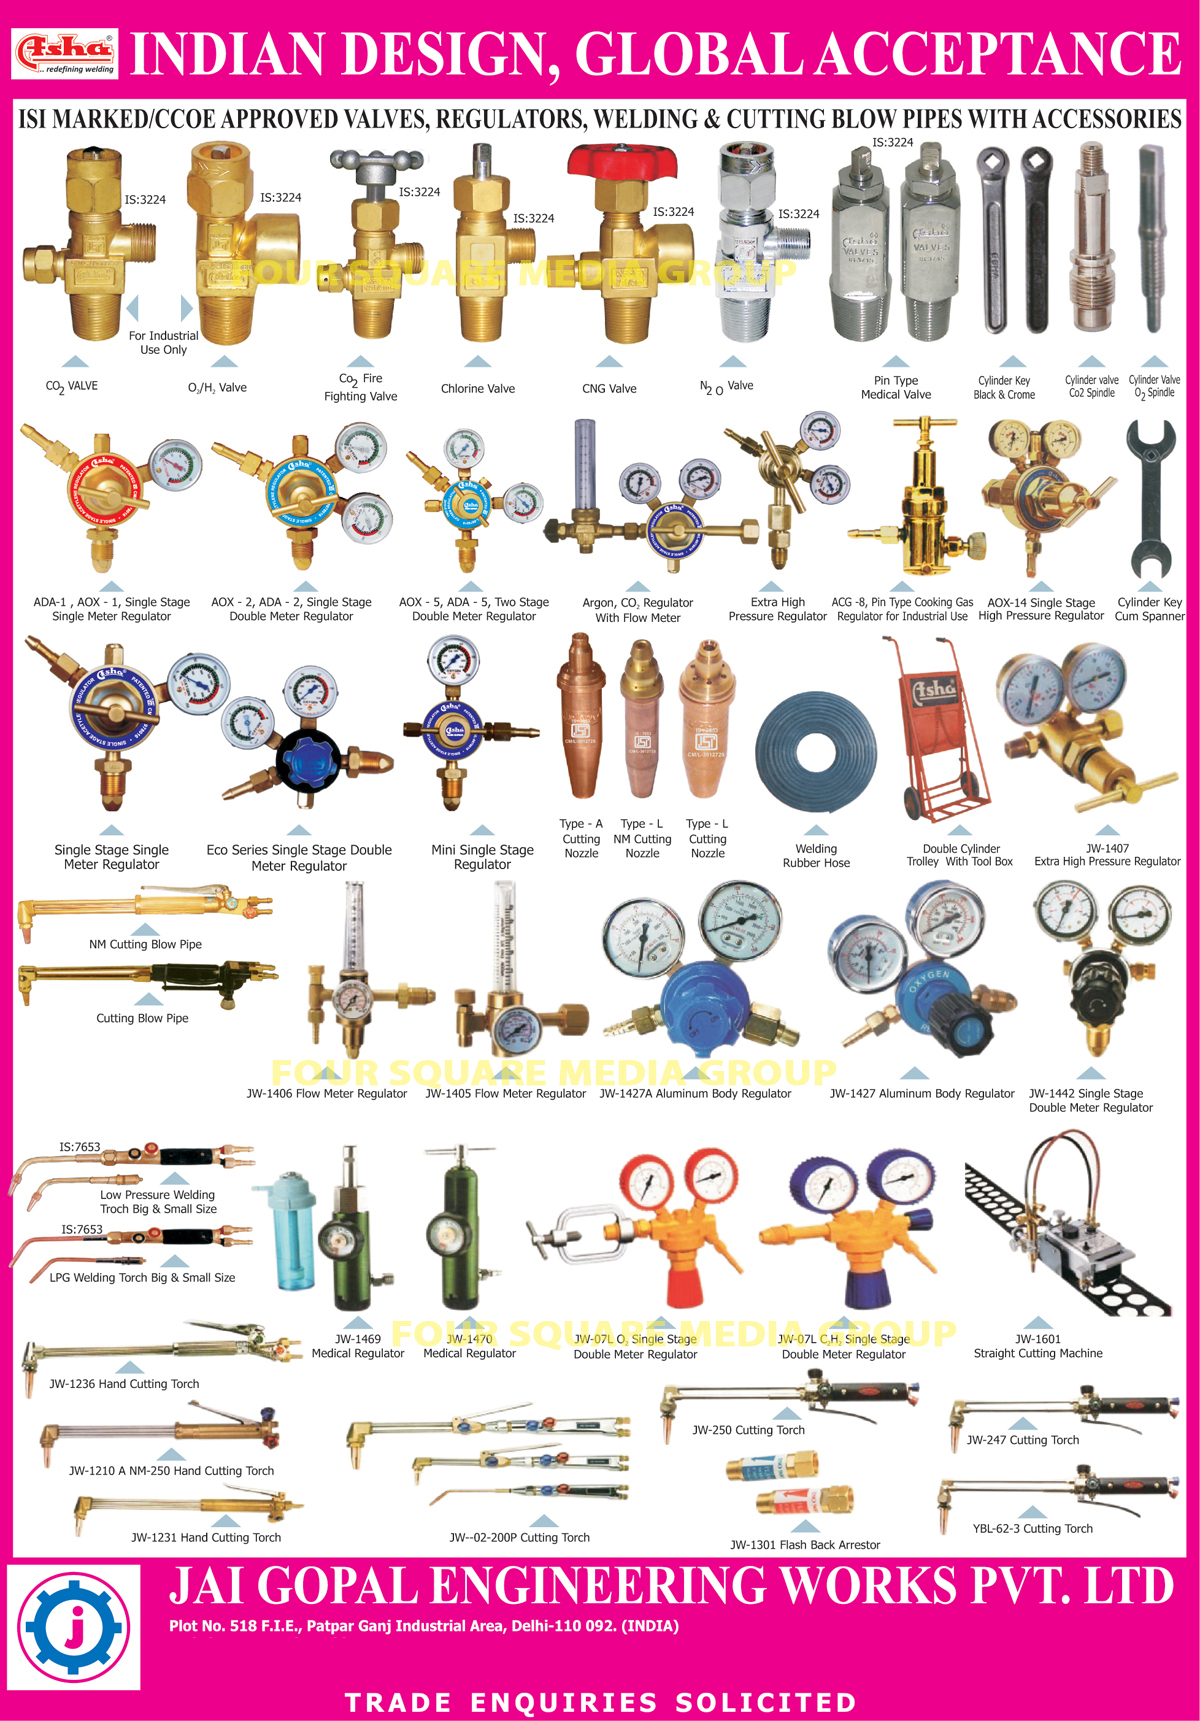 CNG Valve, Cutting Torch, Regulators, Welding Machine, Welding Rubber Hose, Welding Blow Pipe, Cutting Blow Pipe, Flash Back Arrestor, Meter Regulator, Medical Regulator, Low Pressure Welding Torch,  Aluminium Body Regulator, Valves, Medical Valves, Fire Fitting Valves, Cylinder Key cum Spanner, Cutting Nozzle, Cylinder Trolley, Tool Box